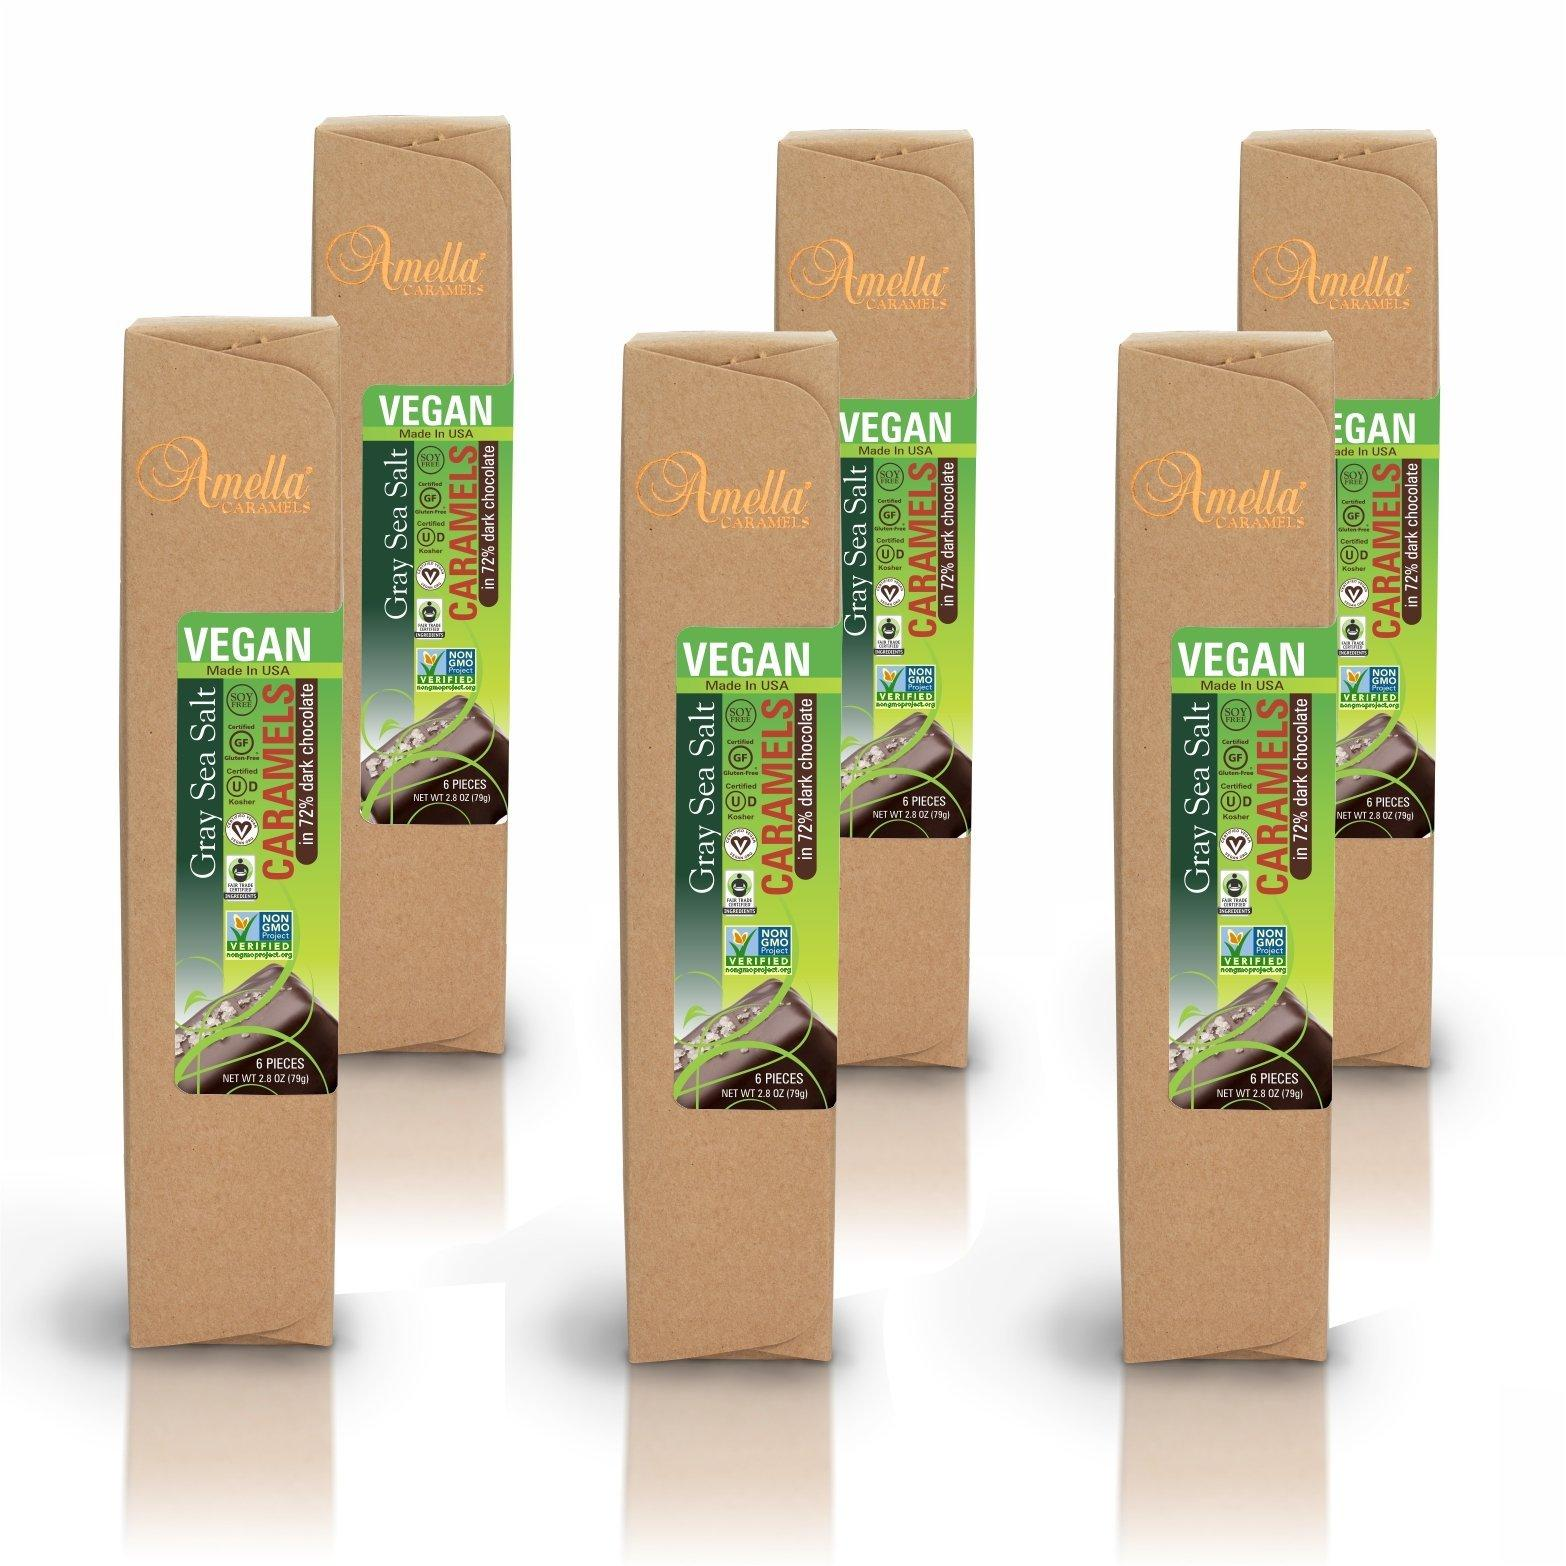 Vegan Gray Salt Caramels in 72% Dark Chocolate, 16.8 ounces (6 packs - 6 pcs/pack)